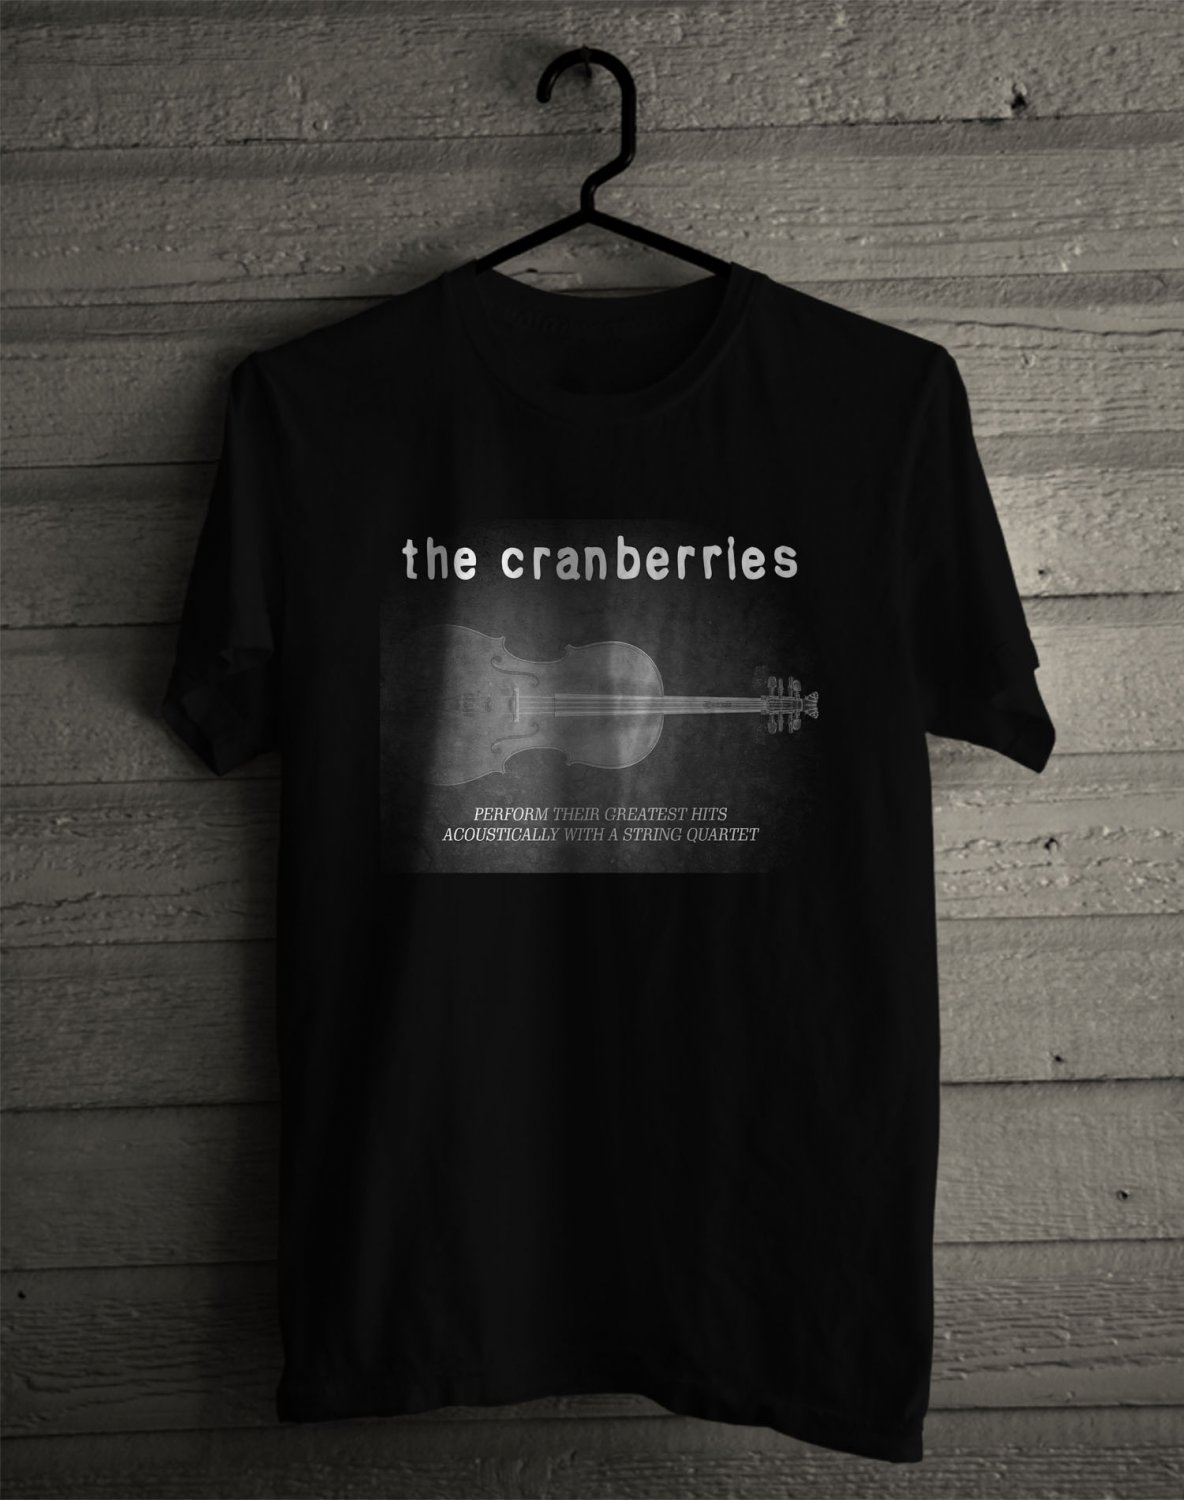 The Cranberries Something Else Tour 2017 Black Tee's Front Side by Complexart z2